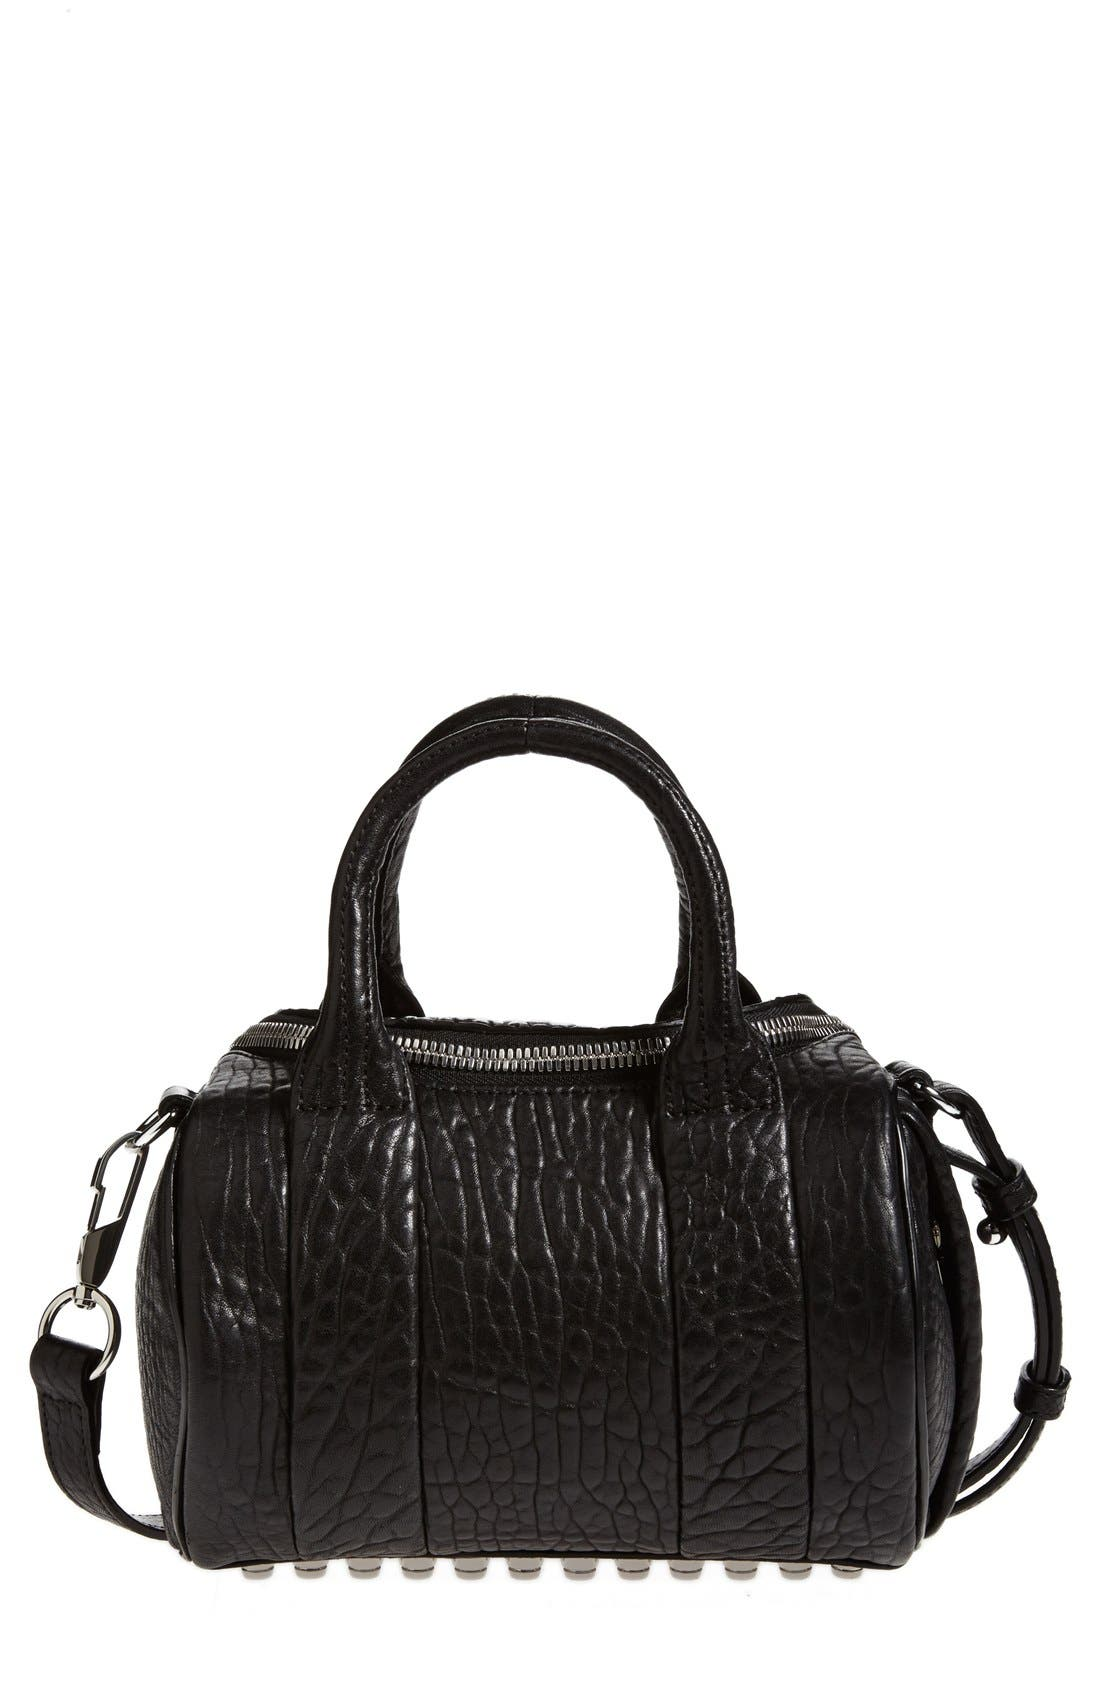 Alexander Wang 'Mini Rockie - Nickel' Leather Crossbody Satchel